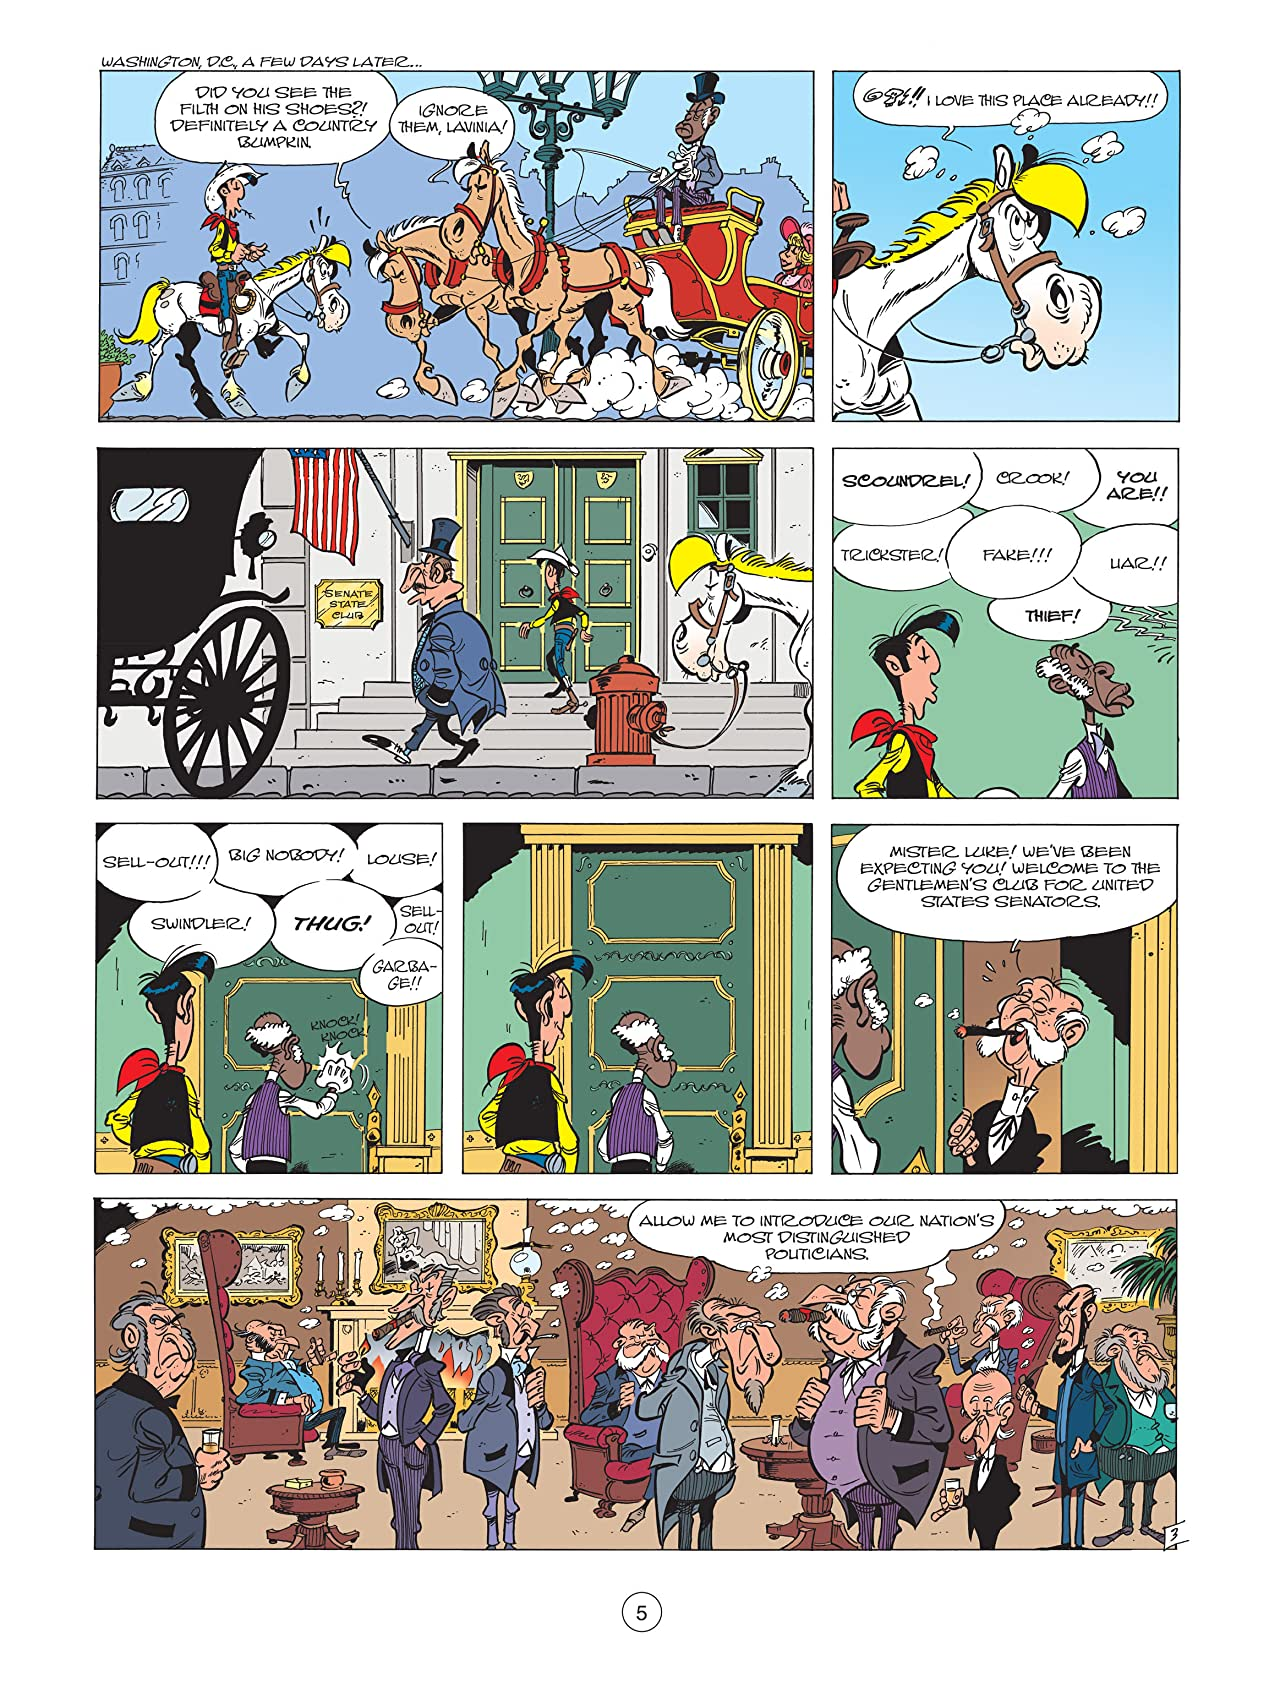 Lucky Luke Vol. 39: The man of Washington